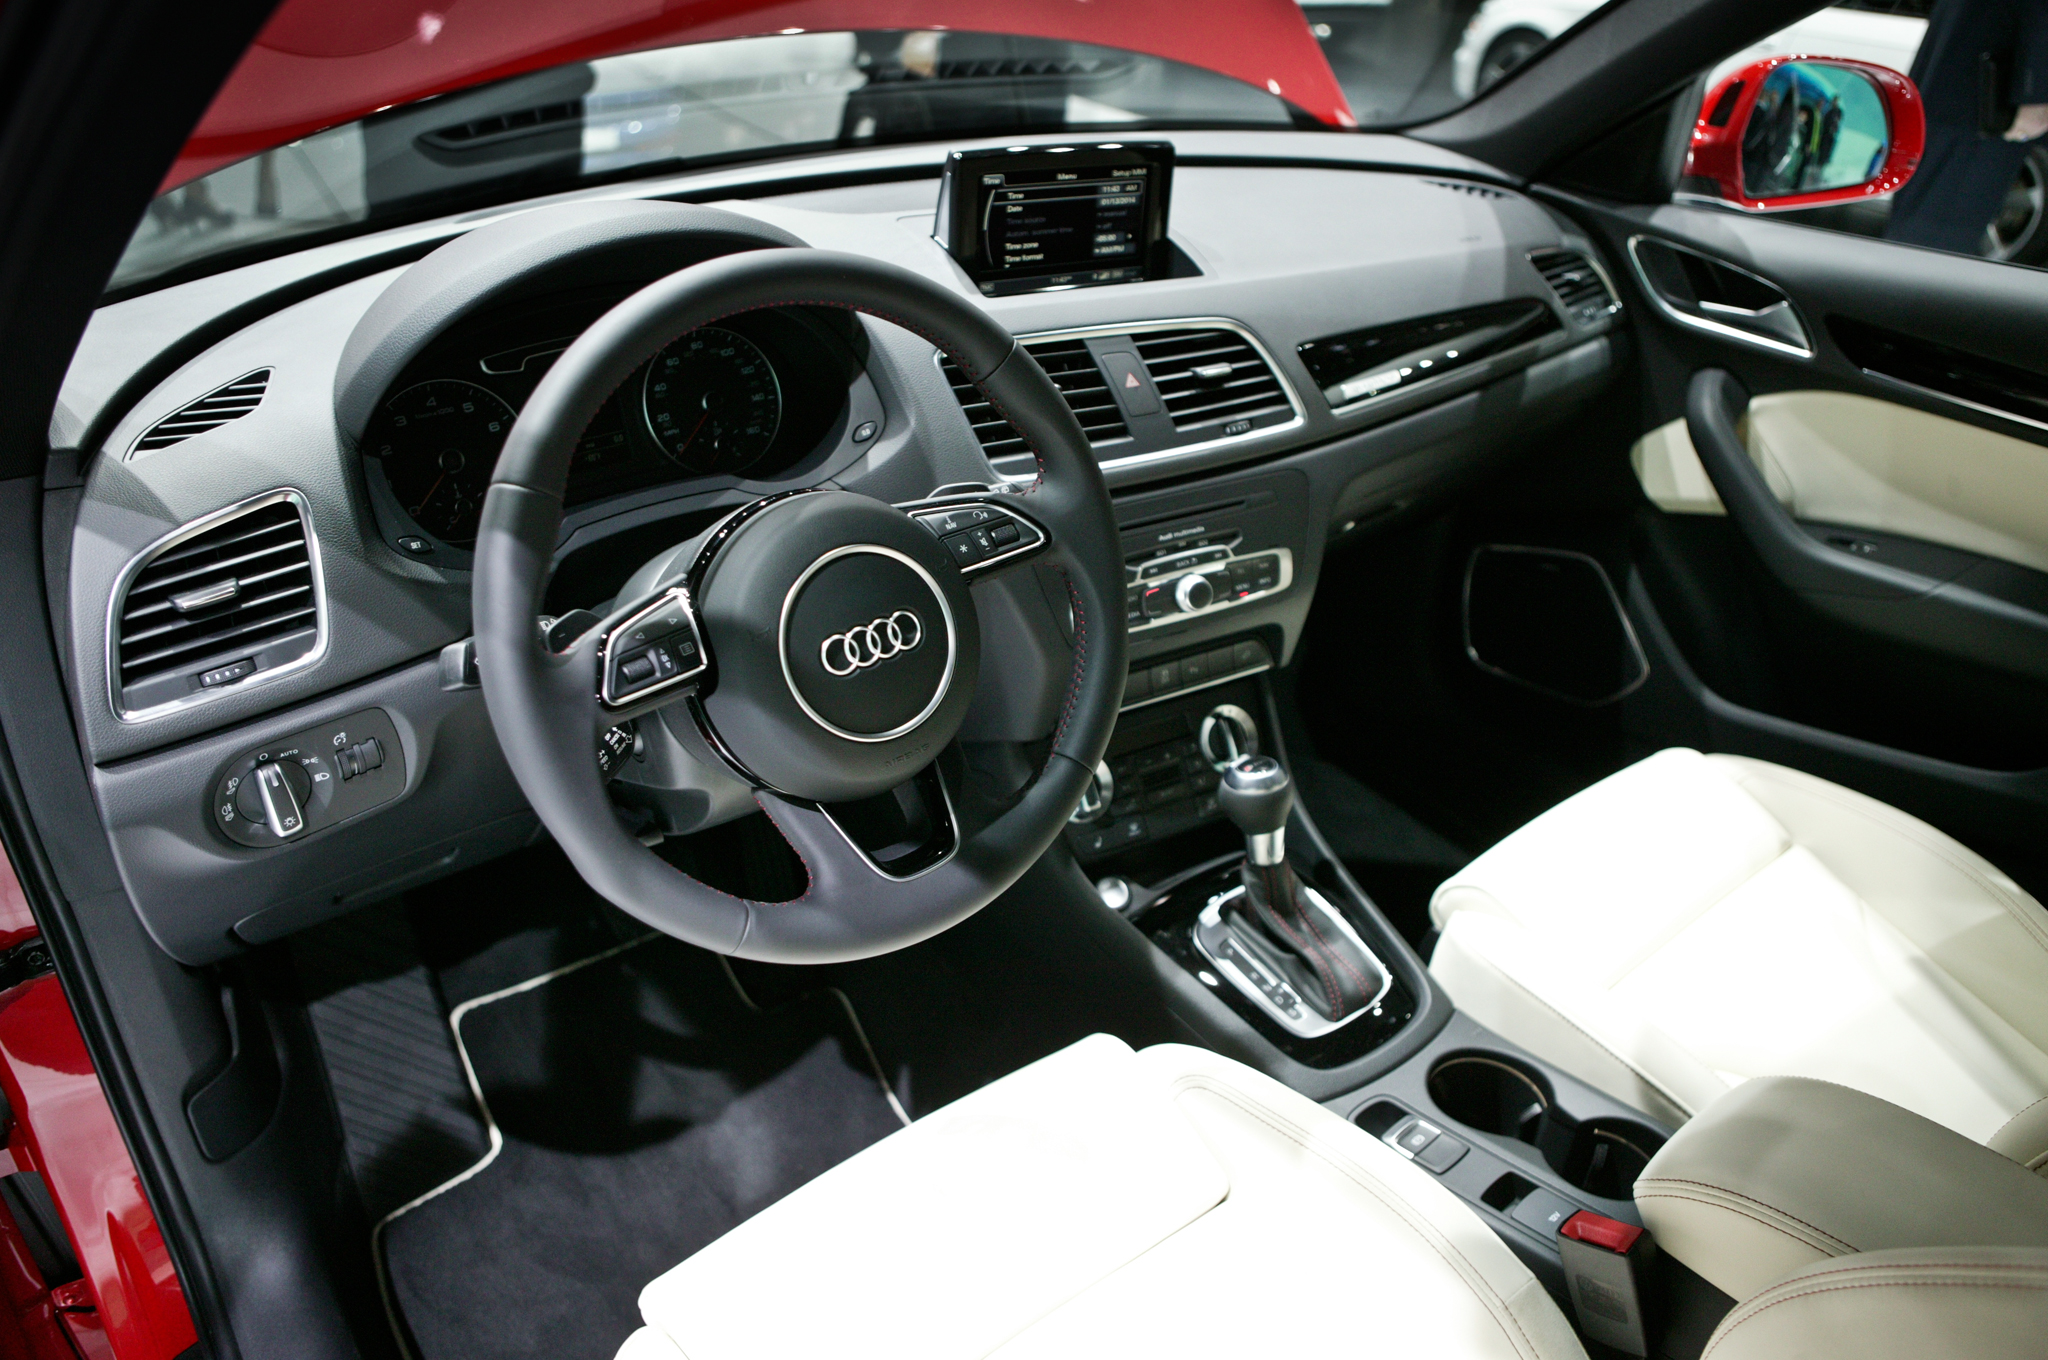 2015 Audi Q3 Dashboard And Cockpit (View 17 of 21)